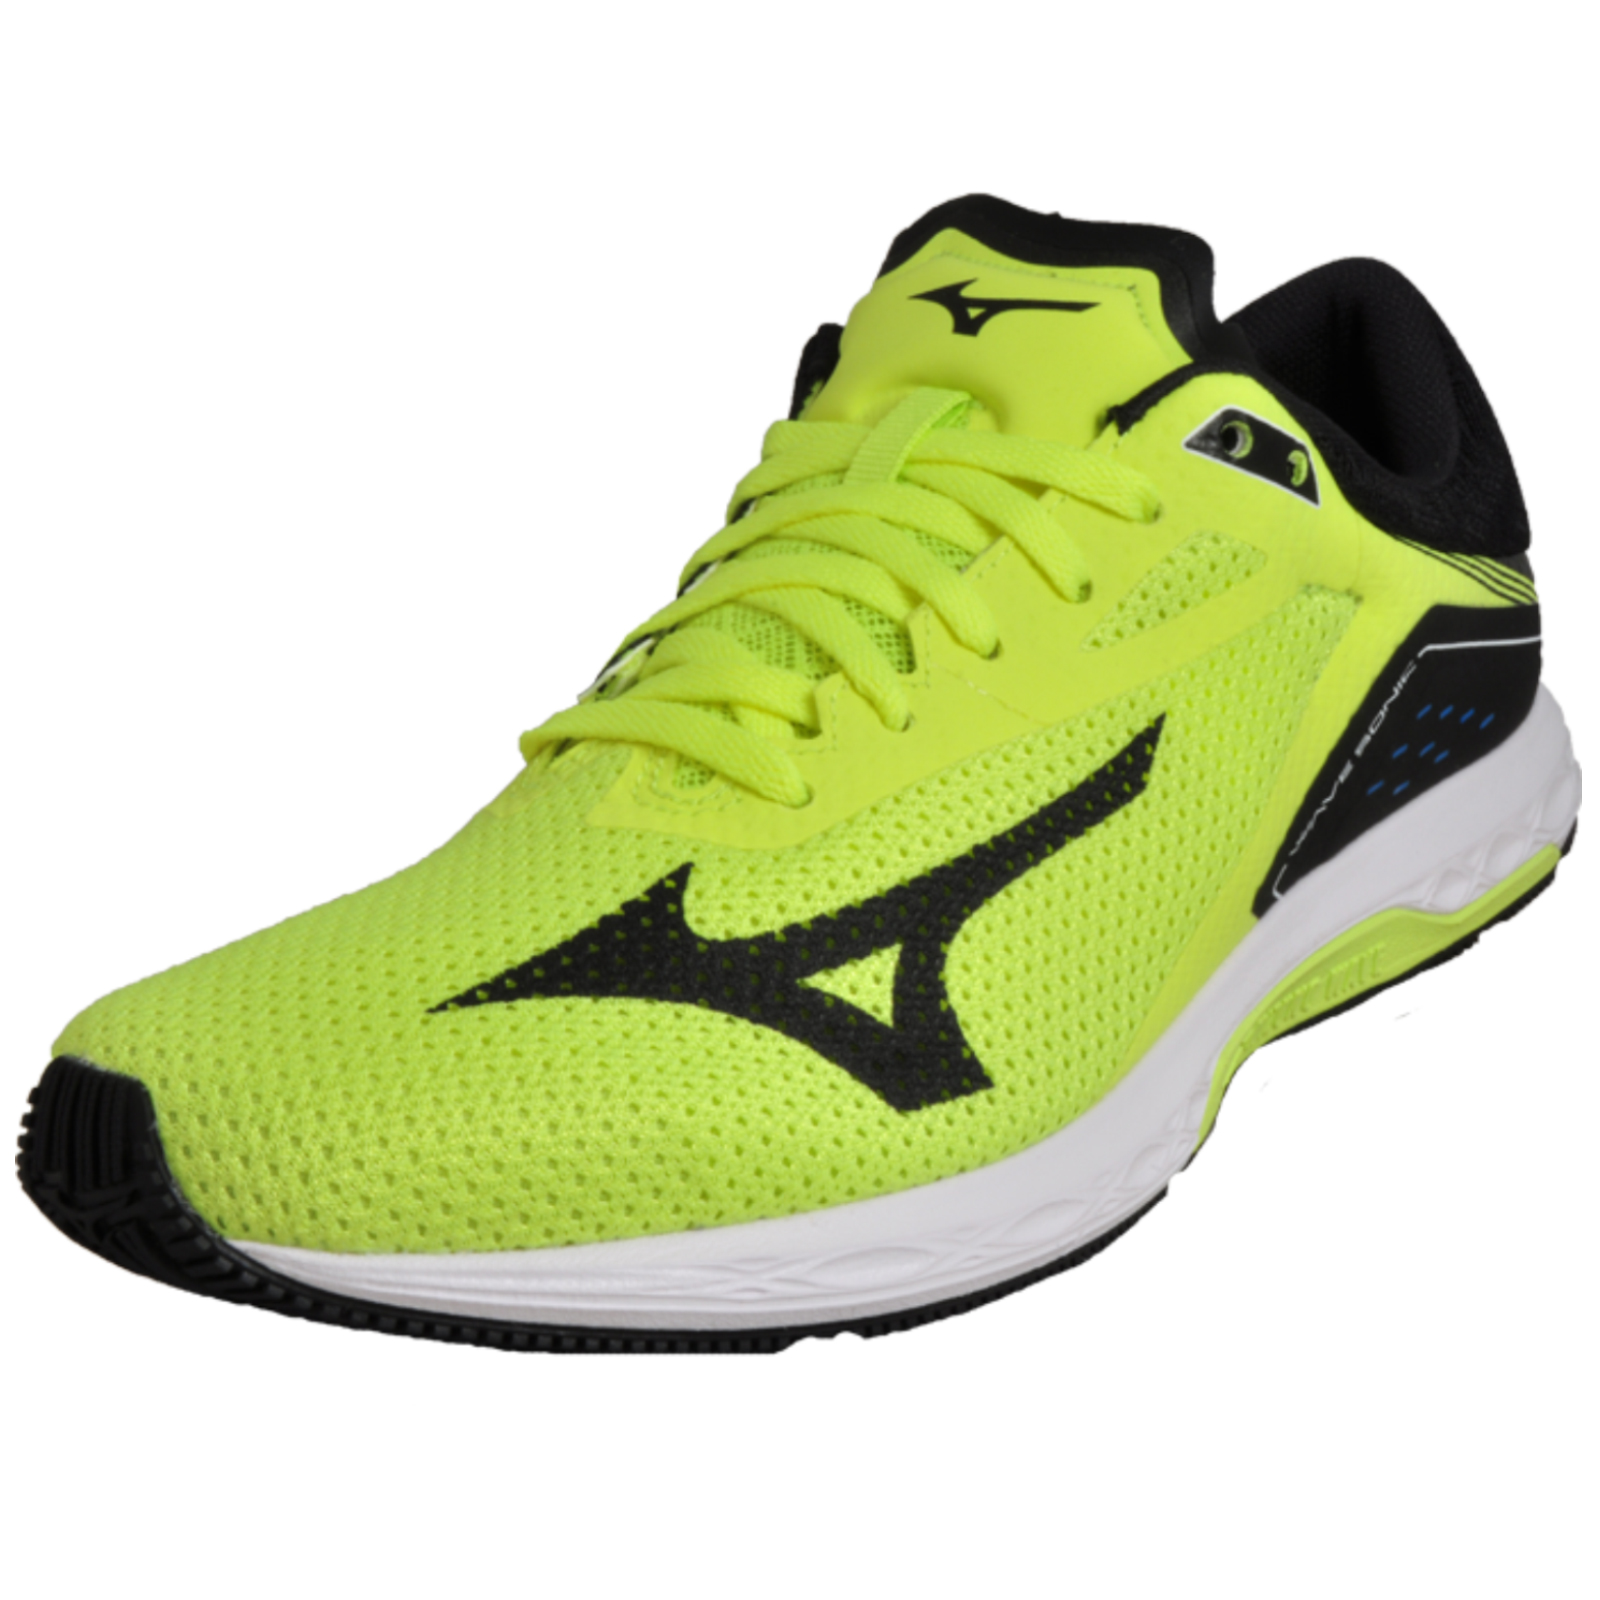 new arrivals 39fbc 37b19 Mizuno Wave Sonic Men s Running Shoes Fitness Gym Workout Trainers Yellow